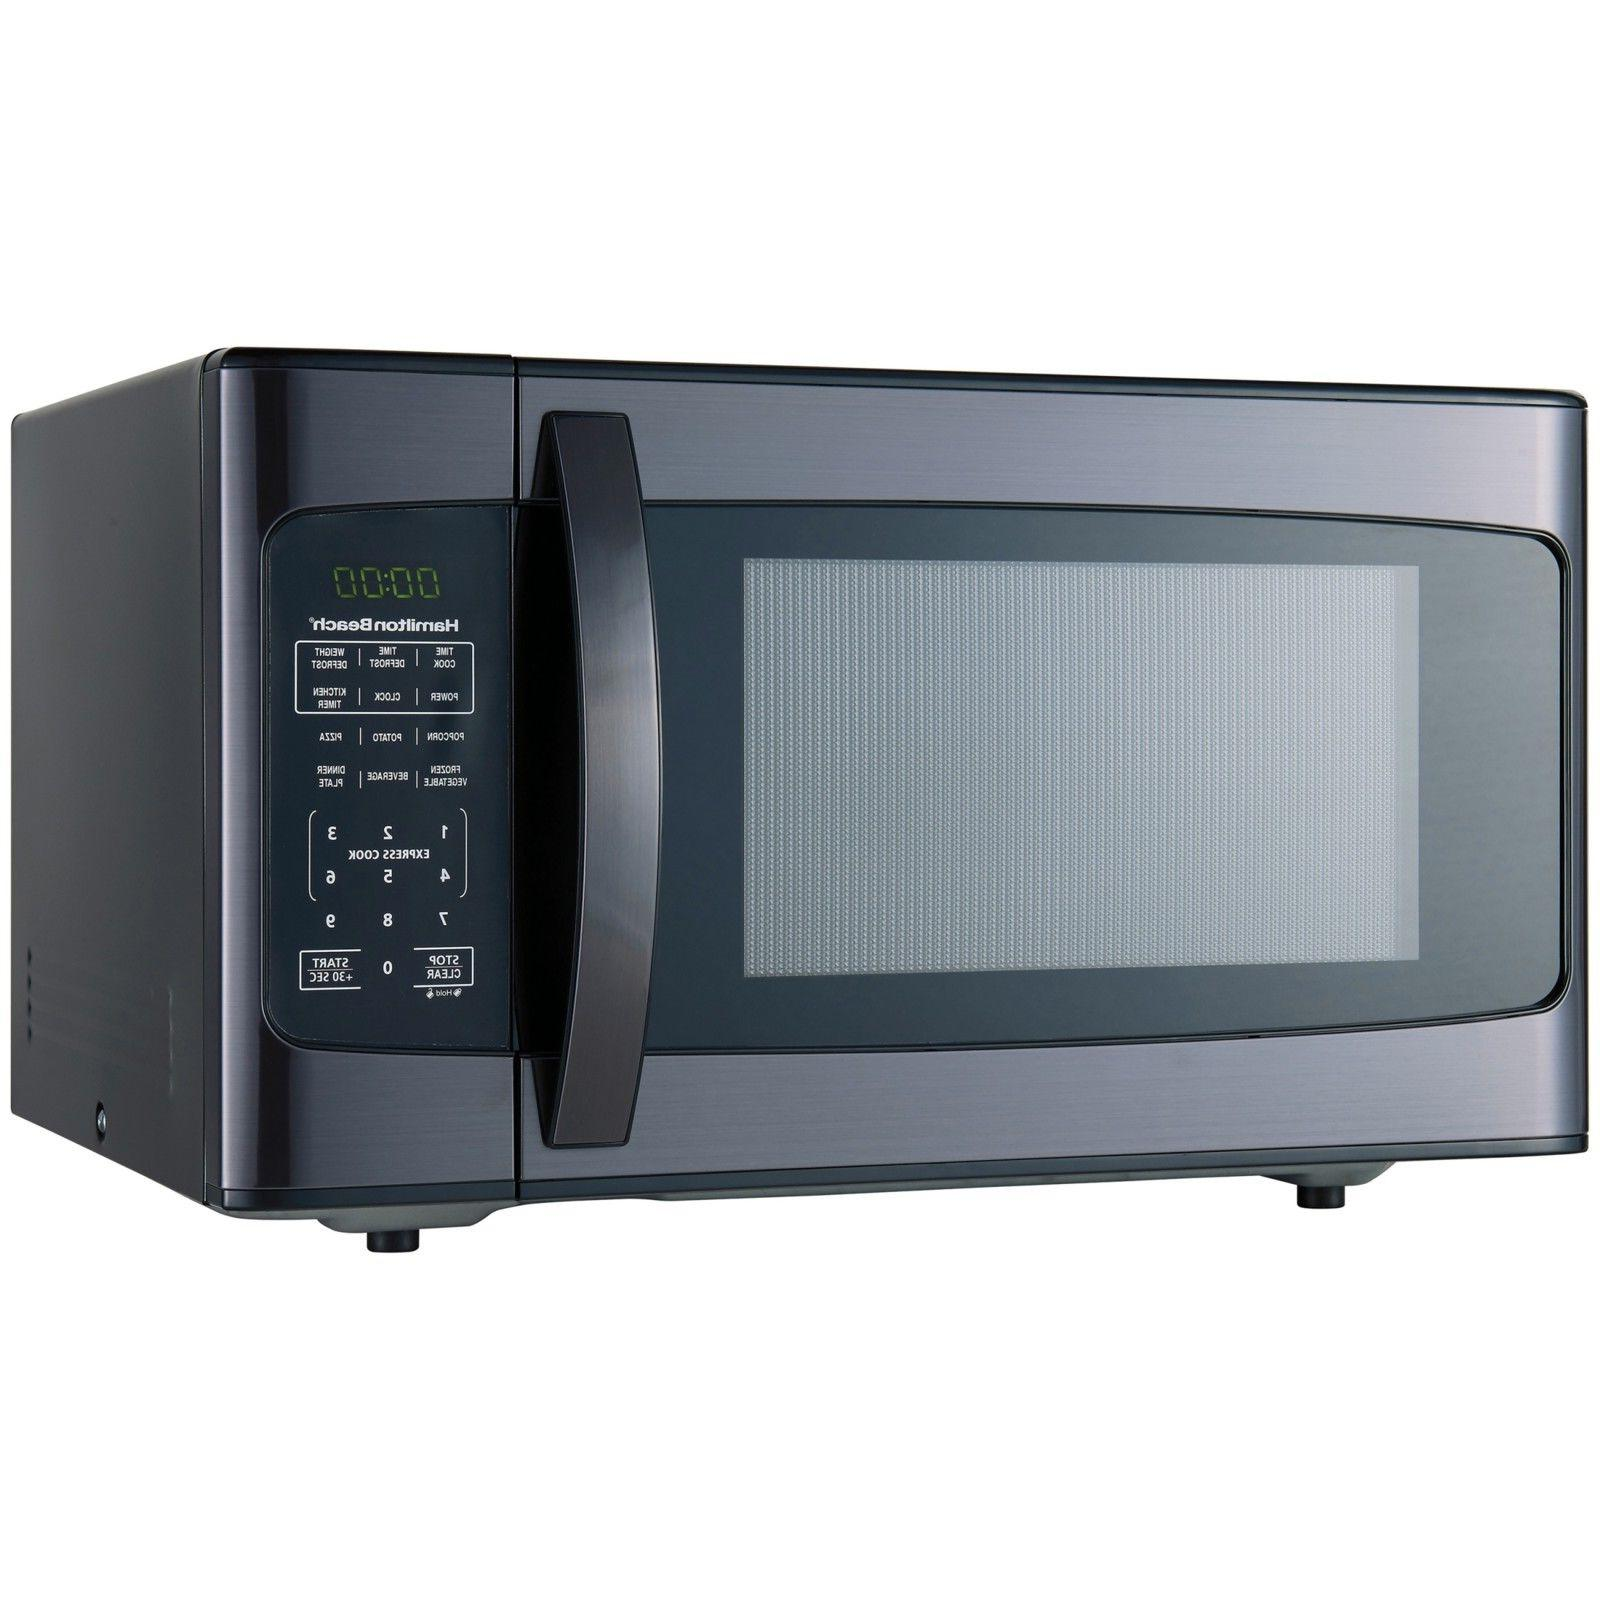 Hamilton Beach Black Microwave 1.1 cu.ft. 1000 Watt Stainles